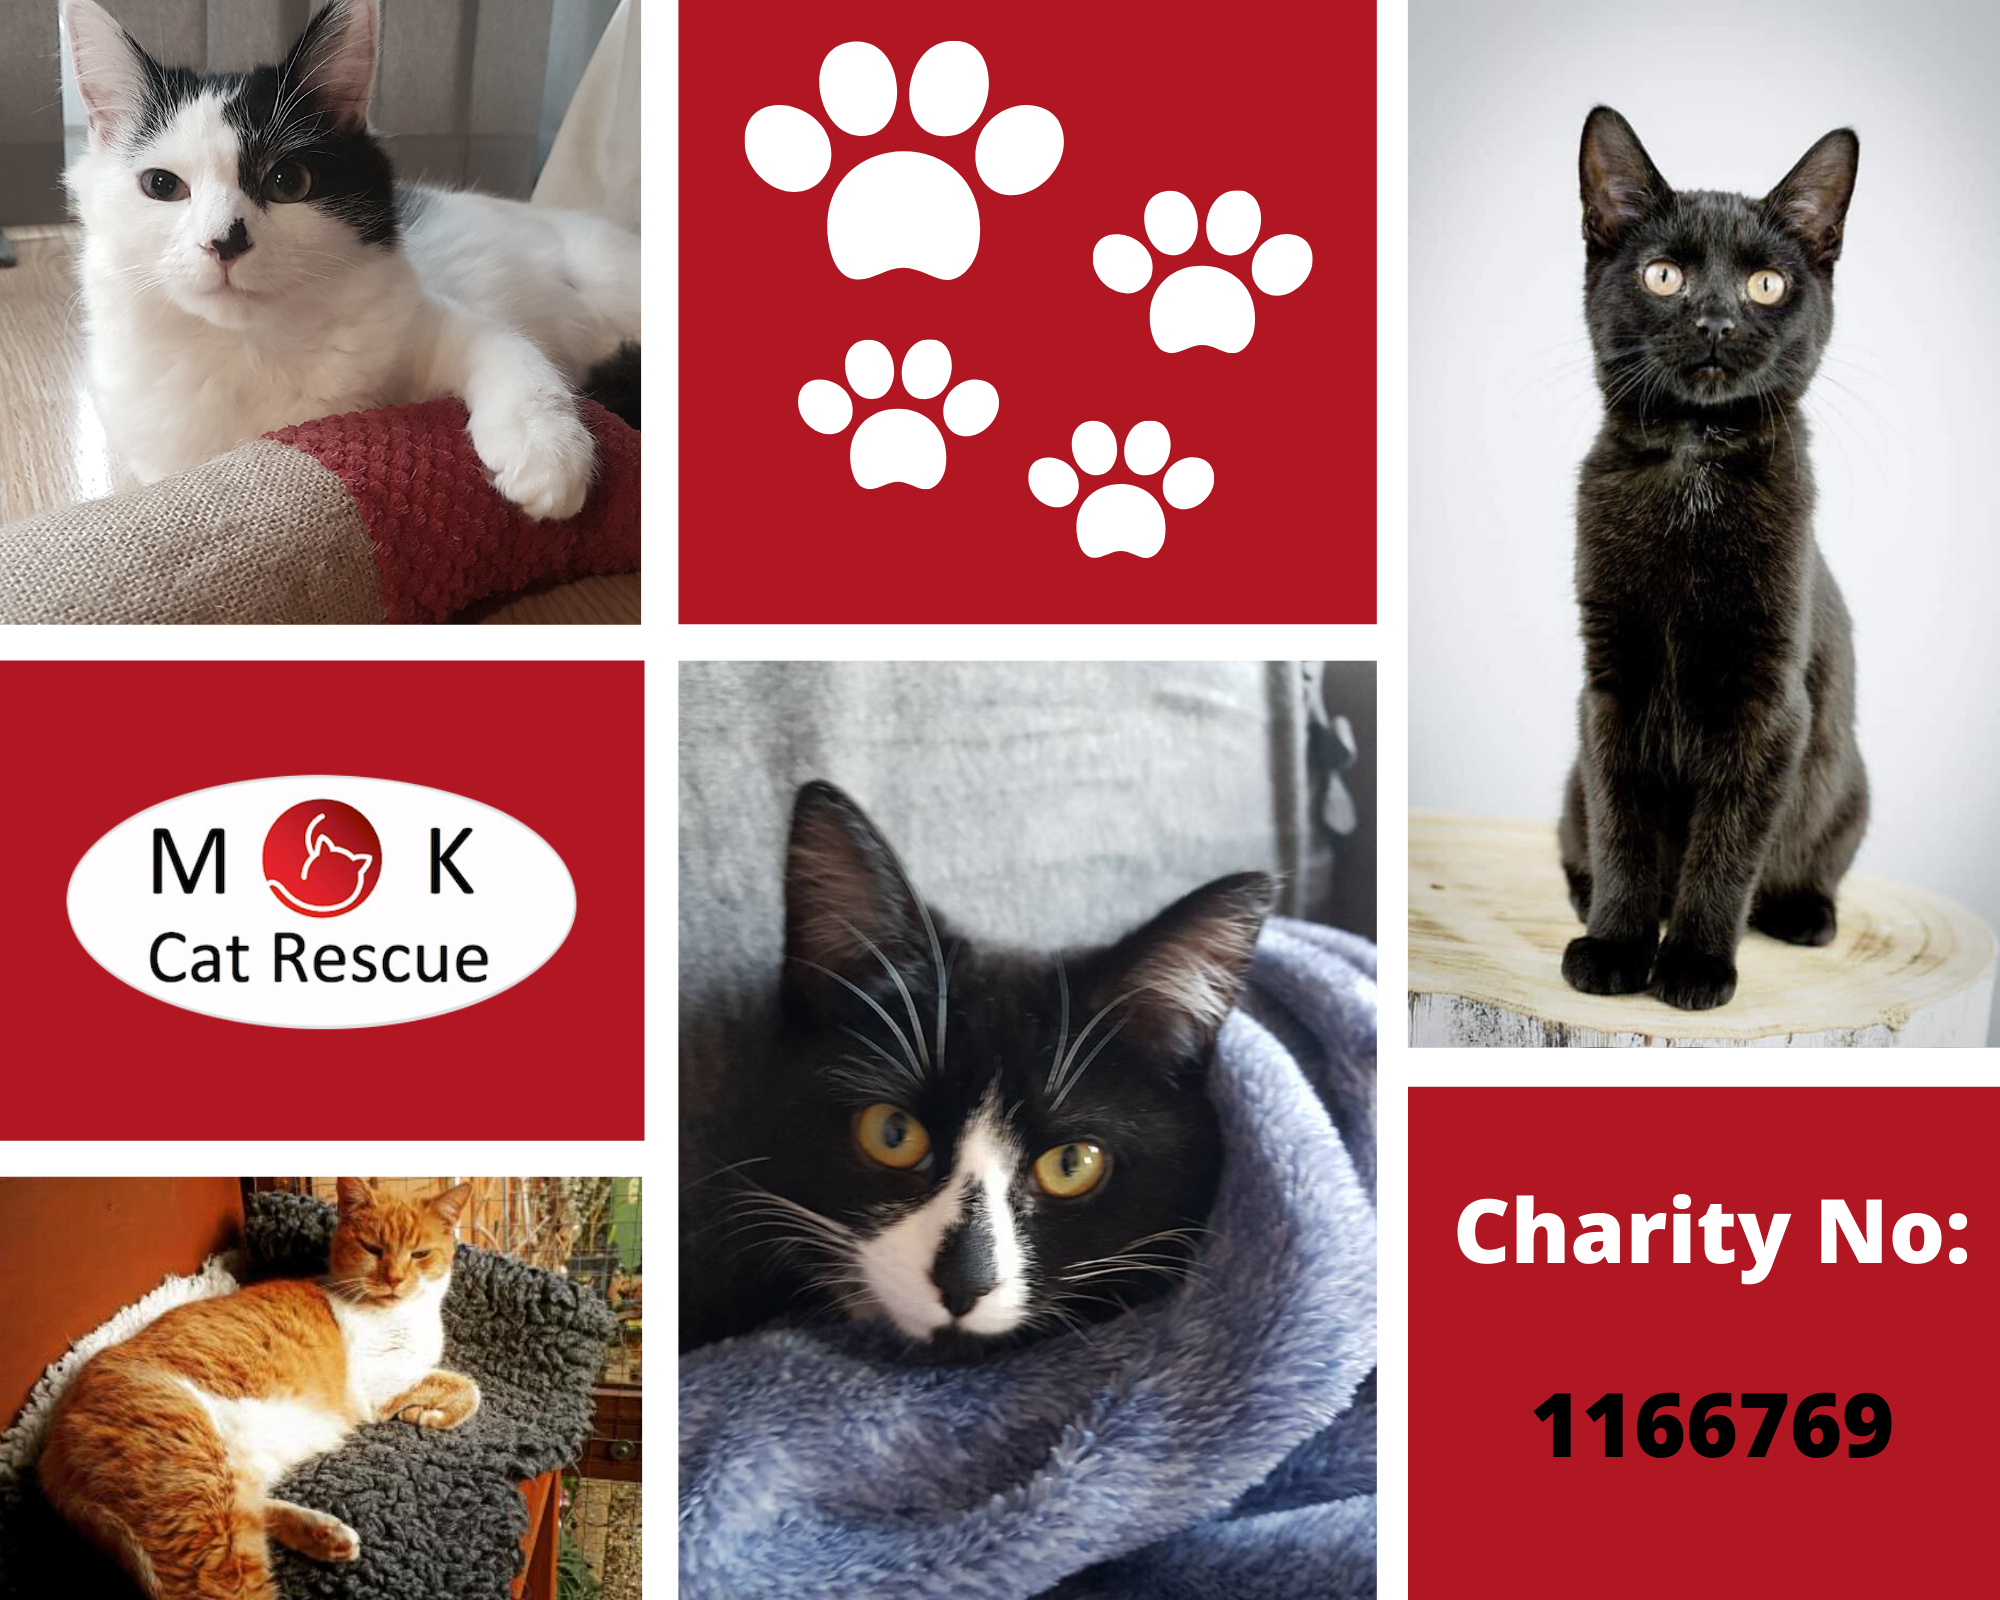 Mk Cat Rescue Passionate About Giving Cats A Second Chance Registered Charity Number 1166769